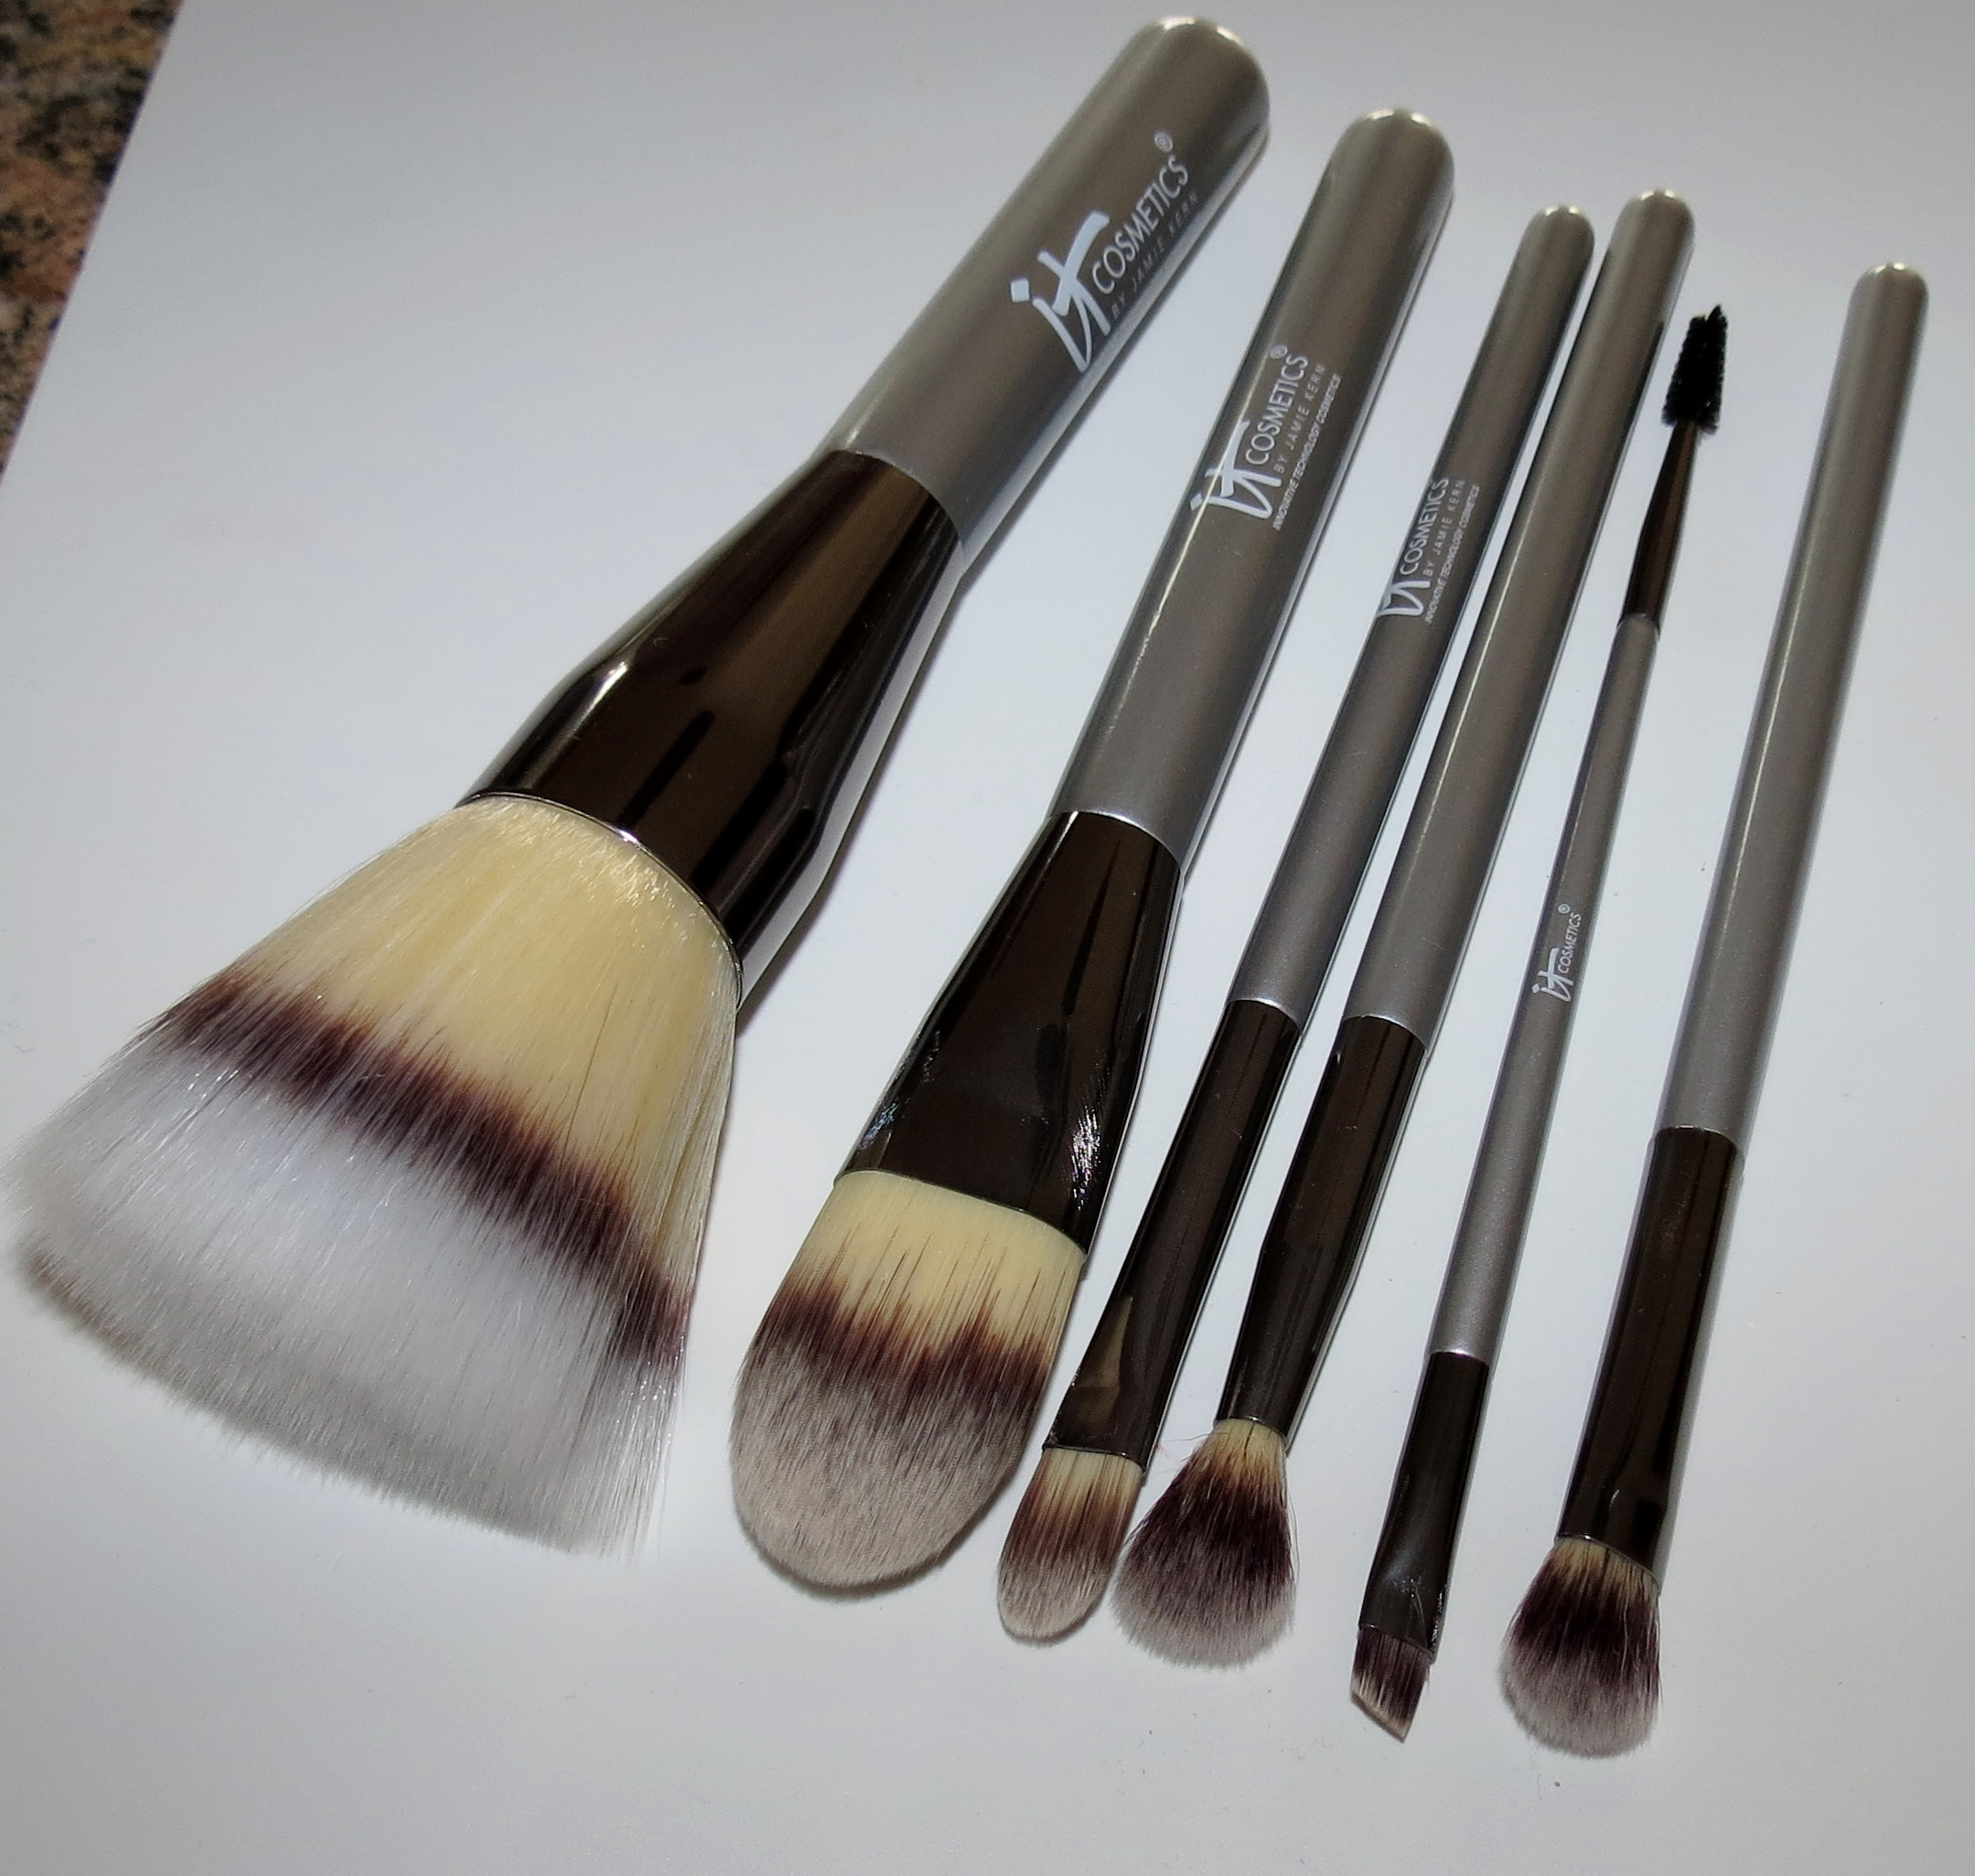 Heavenly Luxe Dual Airbrush Concealer and Foundation Brush by IT Cosmetics #6